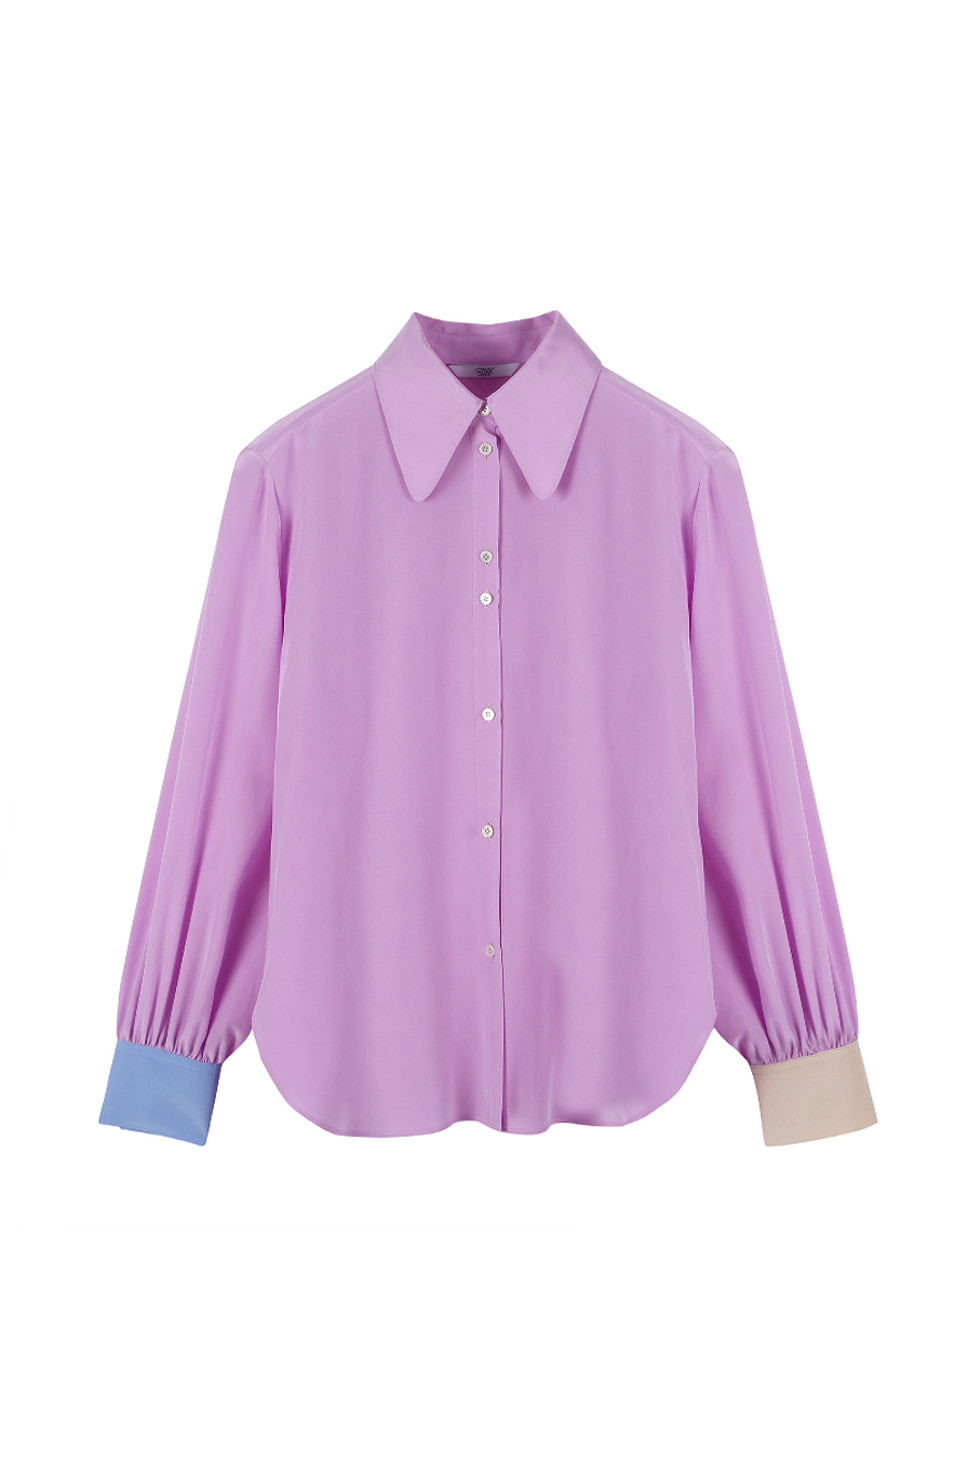 COLOR BLOCK SILK BLOUSE - PURPLE